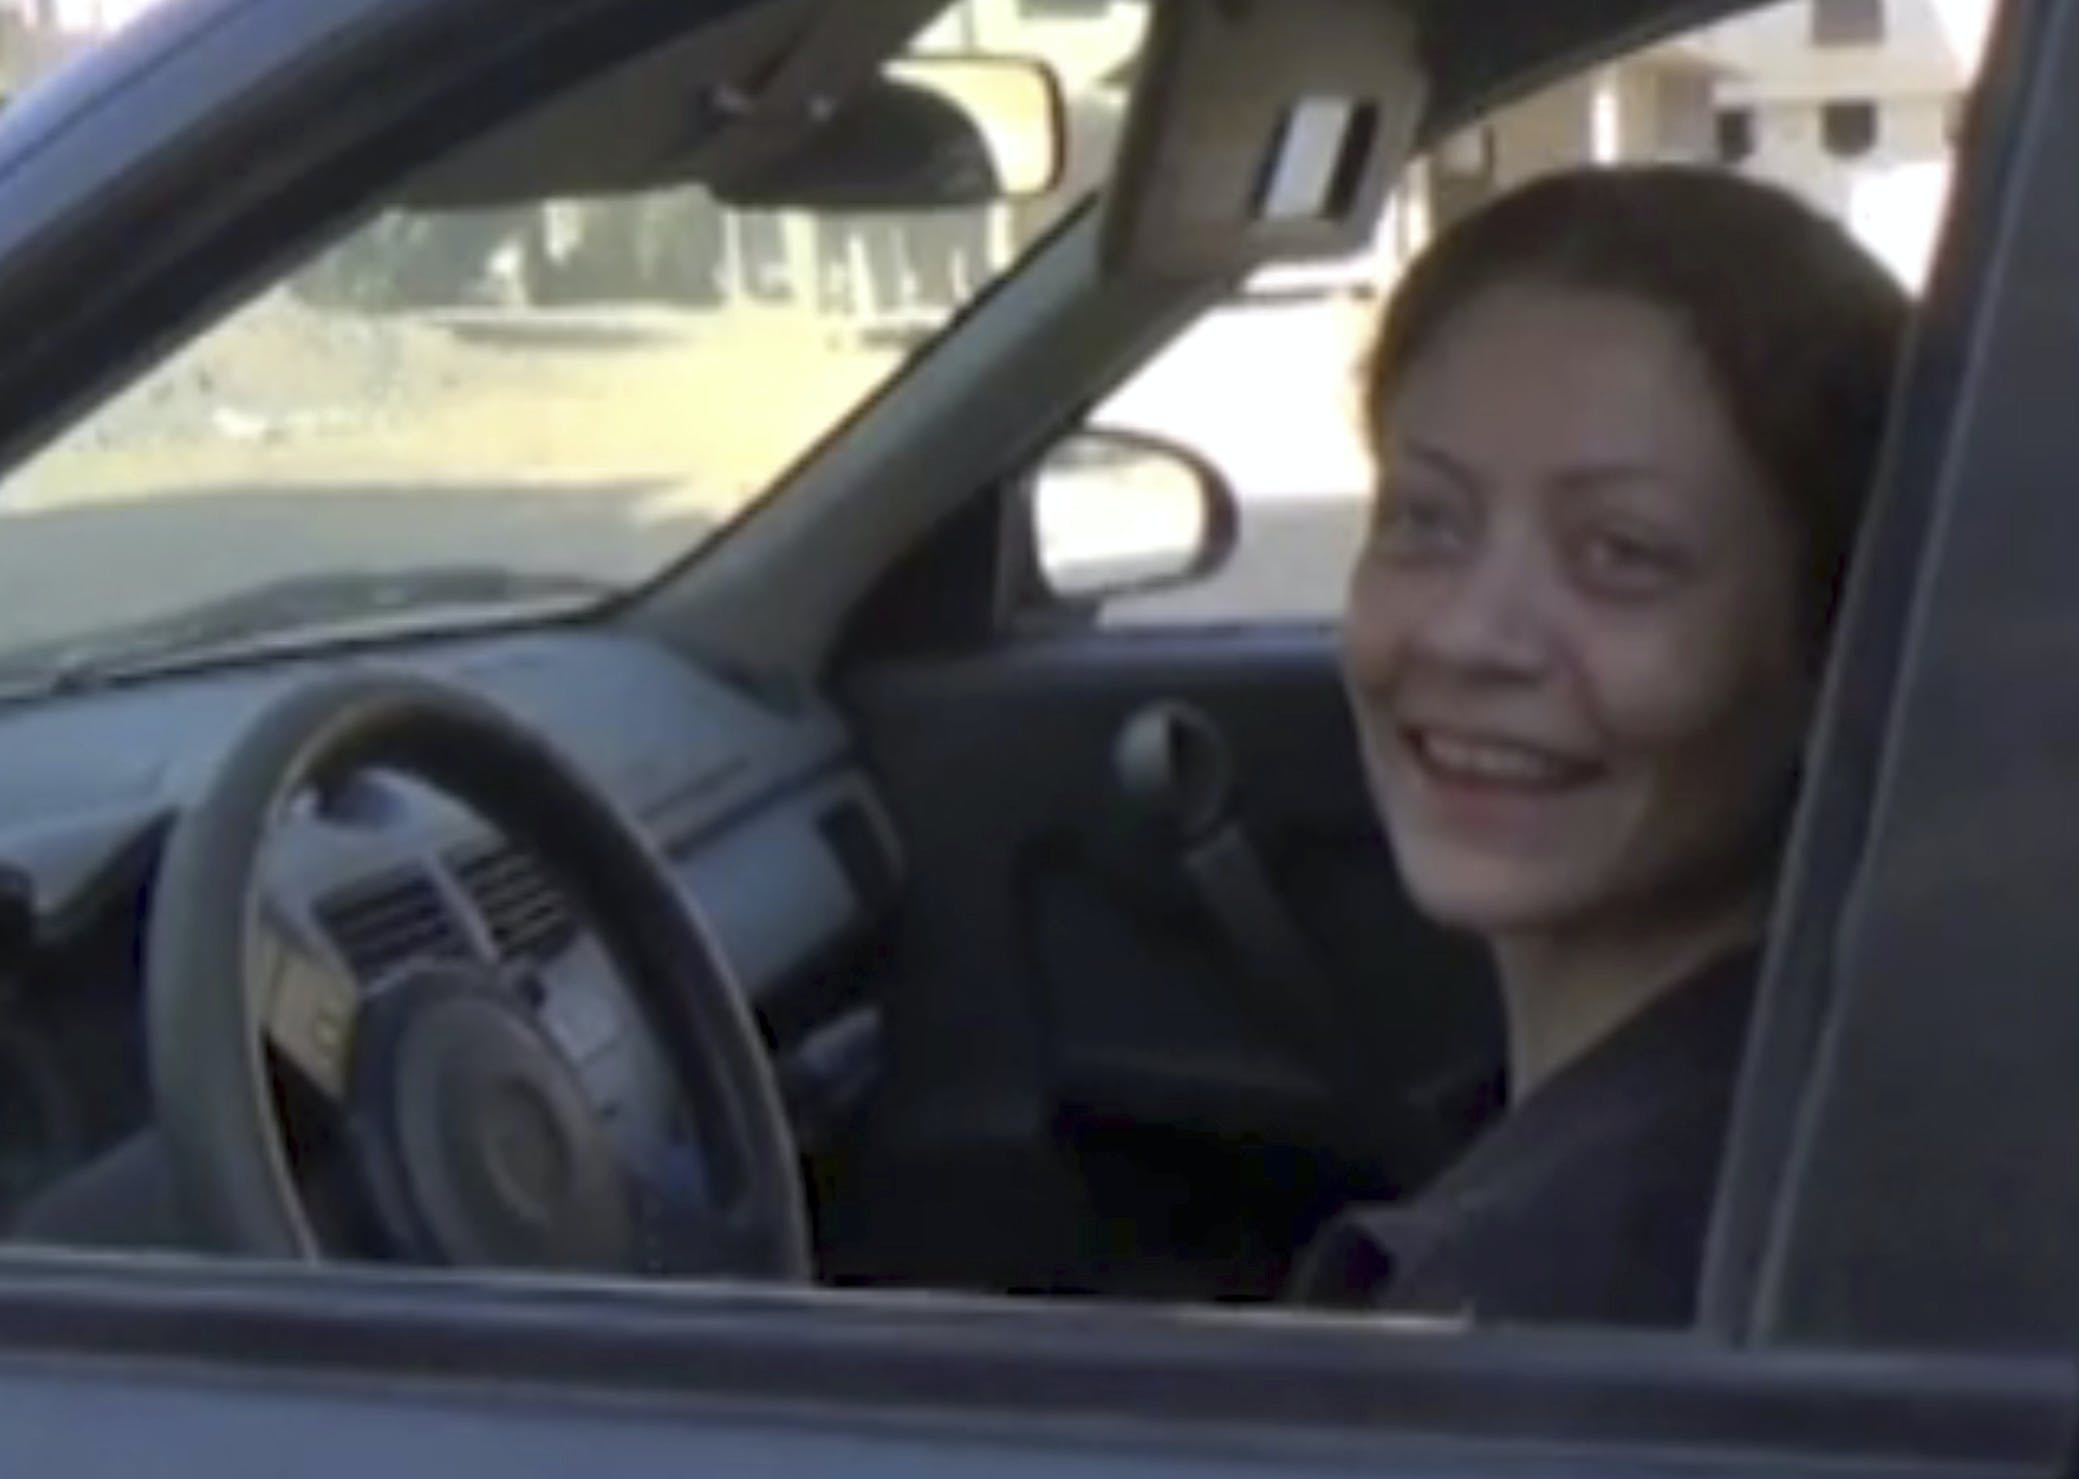 This undated frame grab from video, shows Syrian activist Razan Zaitouneh as she sits inside a car, in Syria. The fate of activist Razan Zaitouneh is one of the longest-running mysteries of Syria's civil war. There's been no sign of life, no proof of death since gunmen abducted her and three of her colleagues from her offices in the rebel-held town of Douma in 2013 -- but clues have emerged that may bring answers. (AP Photo)